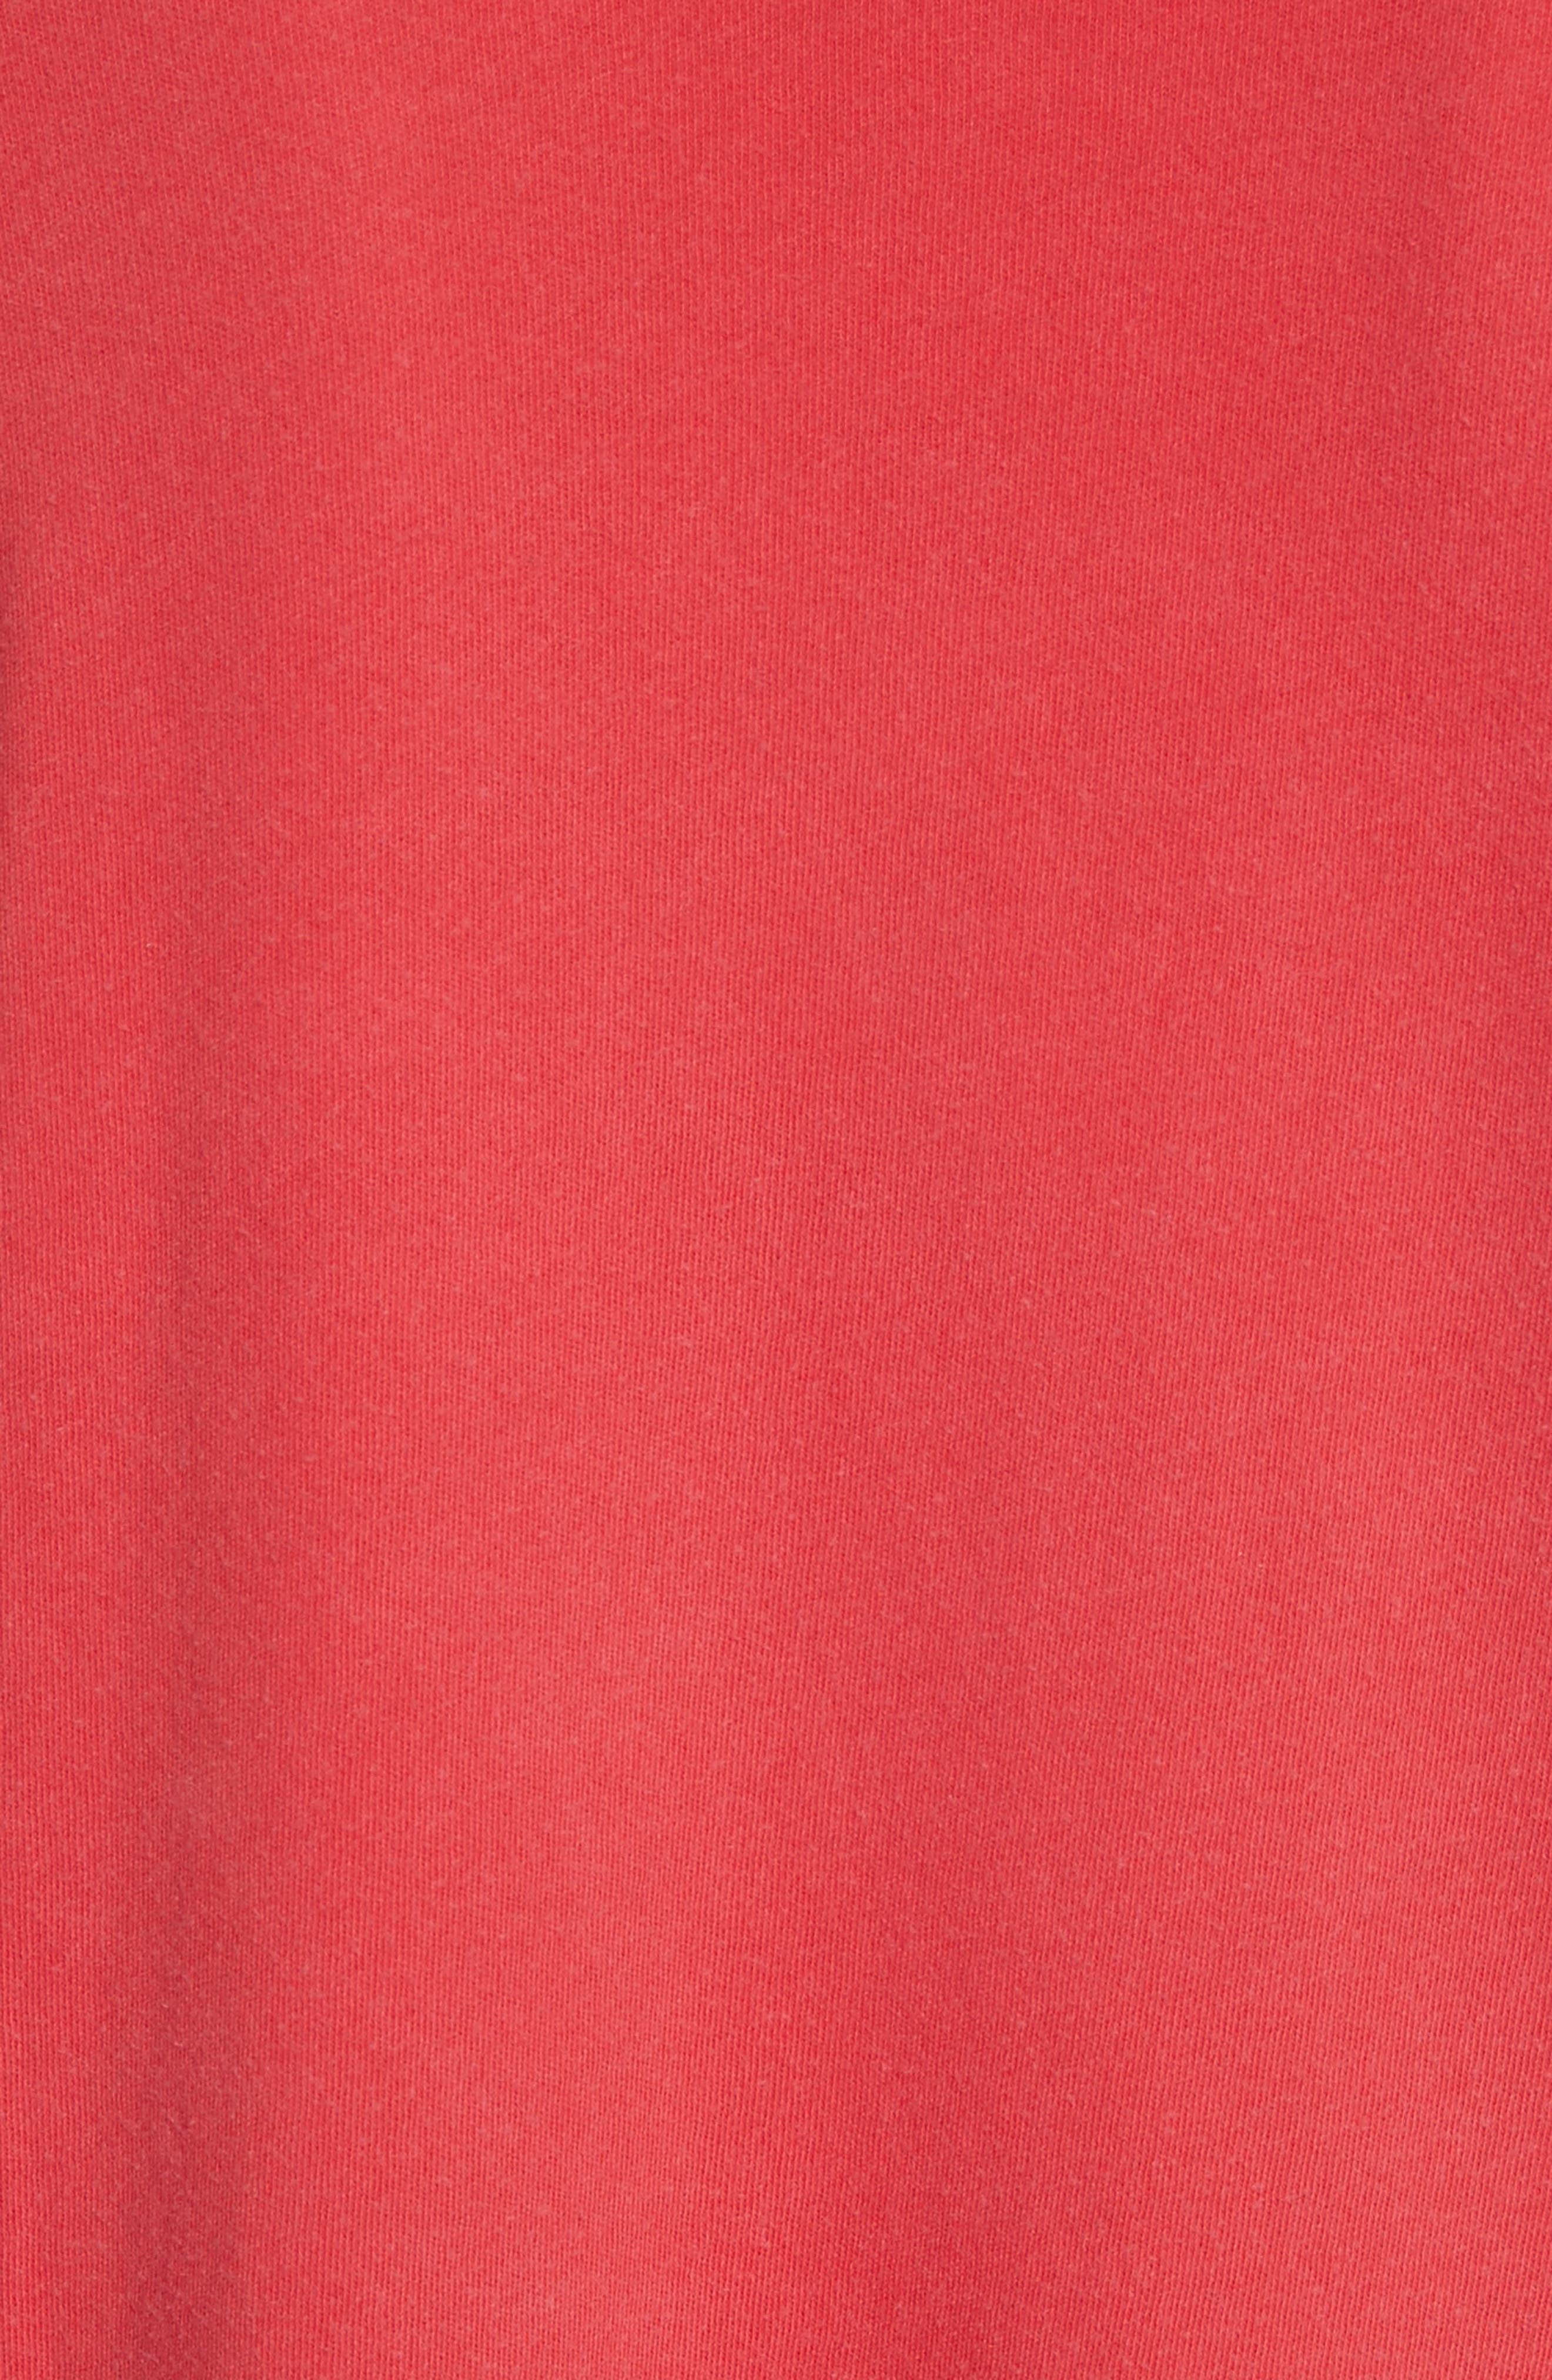 The Bubble Sleeve Dress,                             Alternate thumbnail 5, color,                             Cherry Red